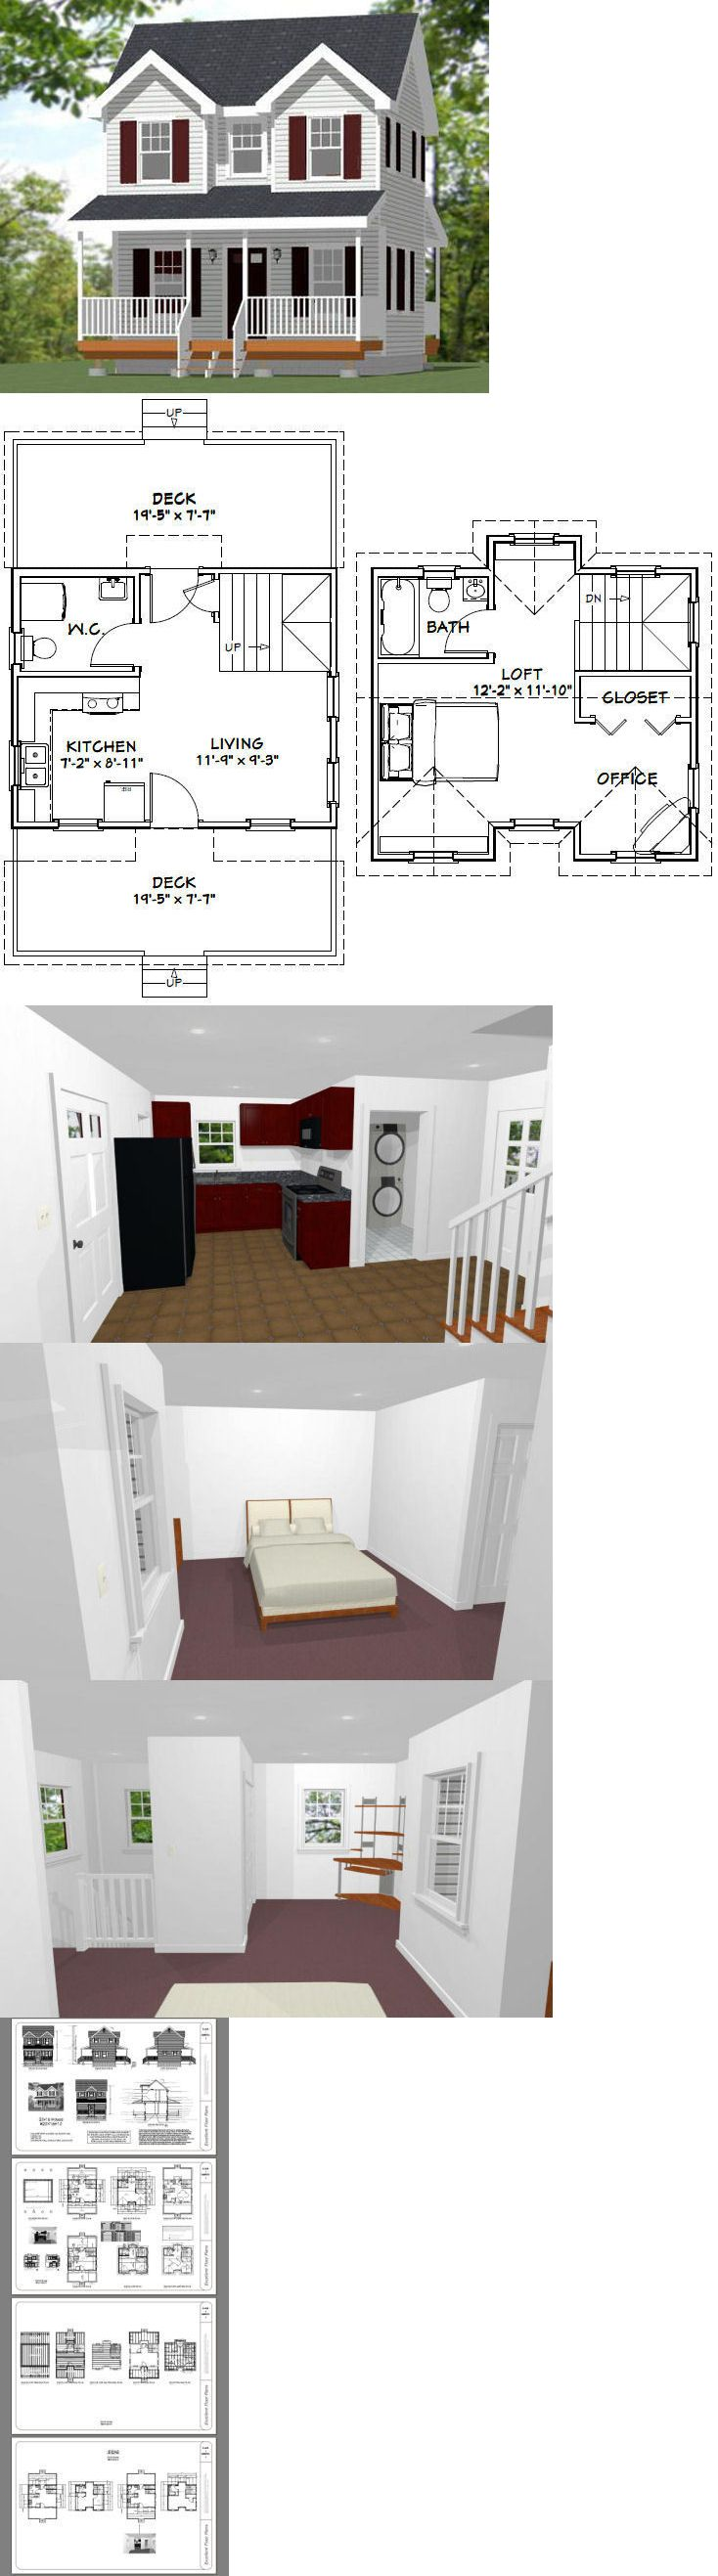 Building plans and blueprints  tiny house pdf floor plan also rh pinterest